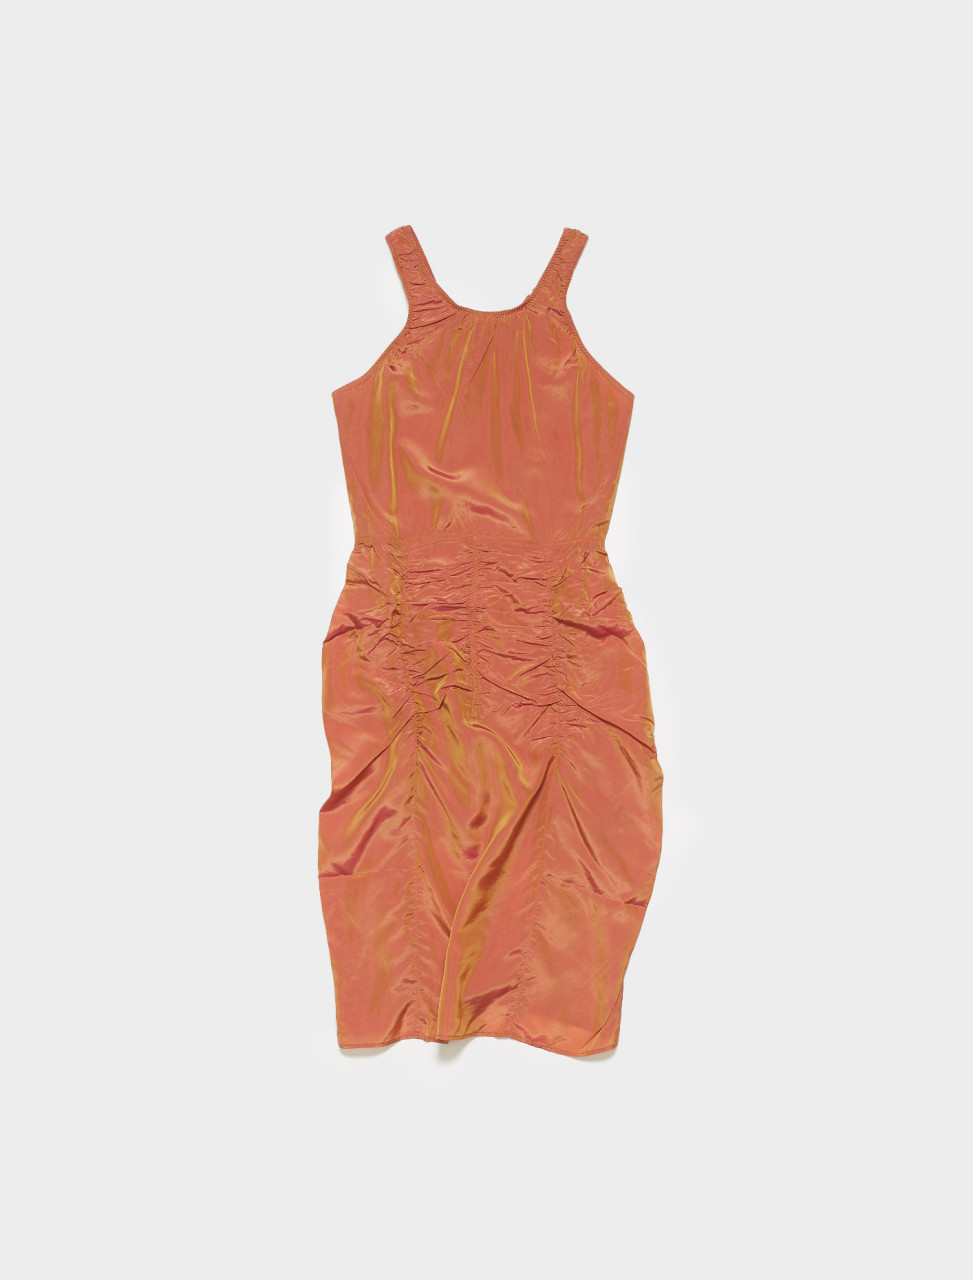 A20277-AOW ACNE STUDIOS DAI CHANGEANT DRESS IN RED ORANGE